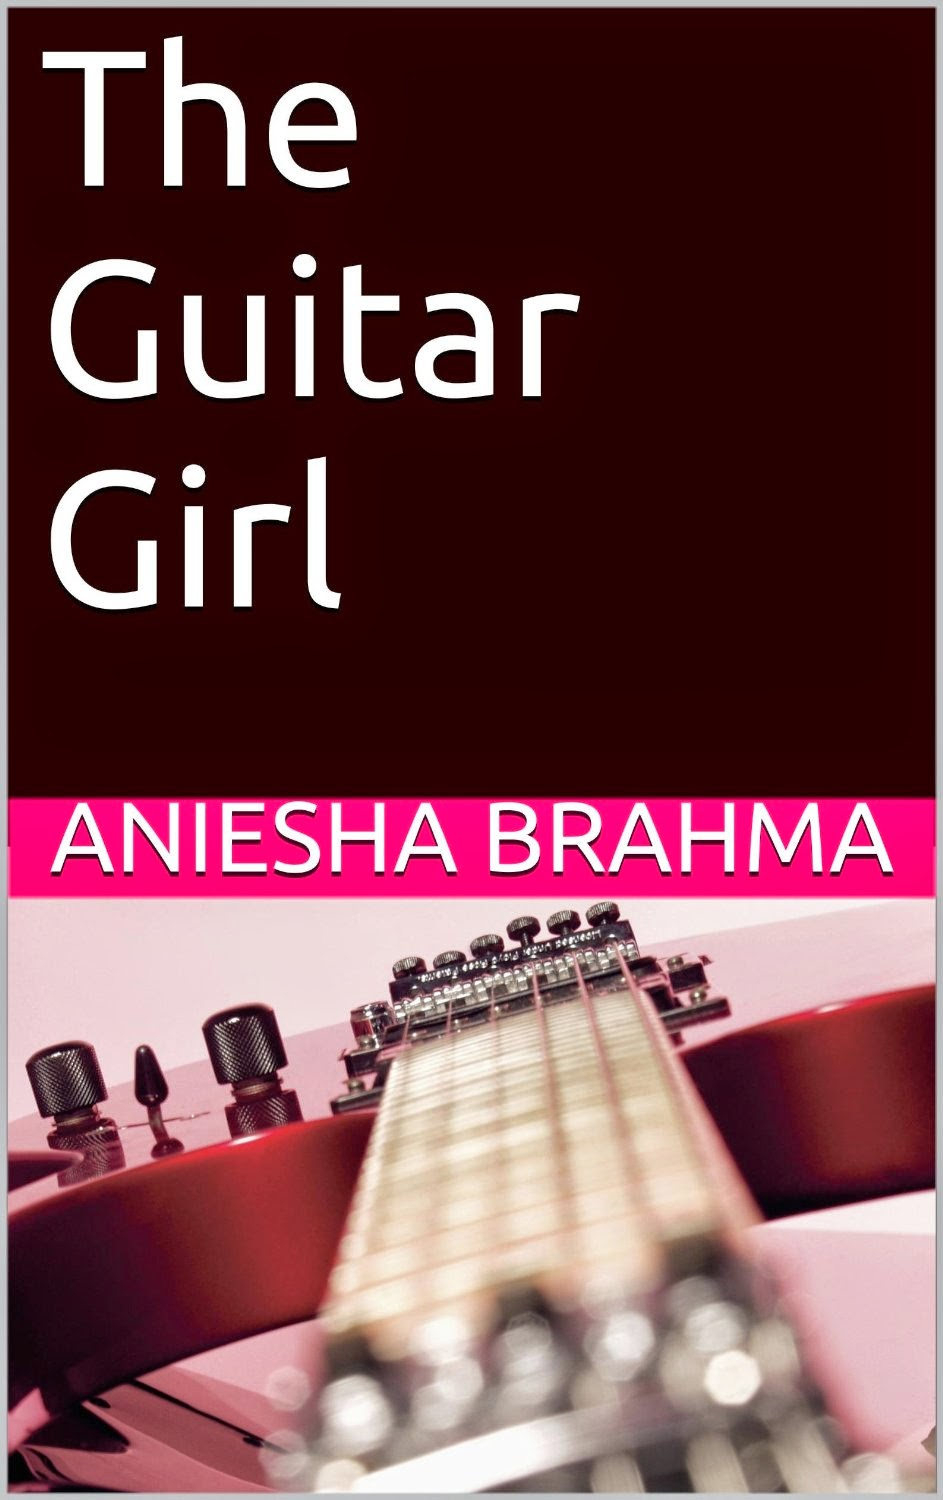 The Guitar Girl by Aniesha Brahma Book Tour